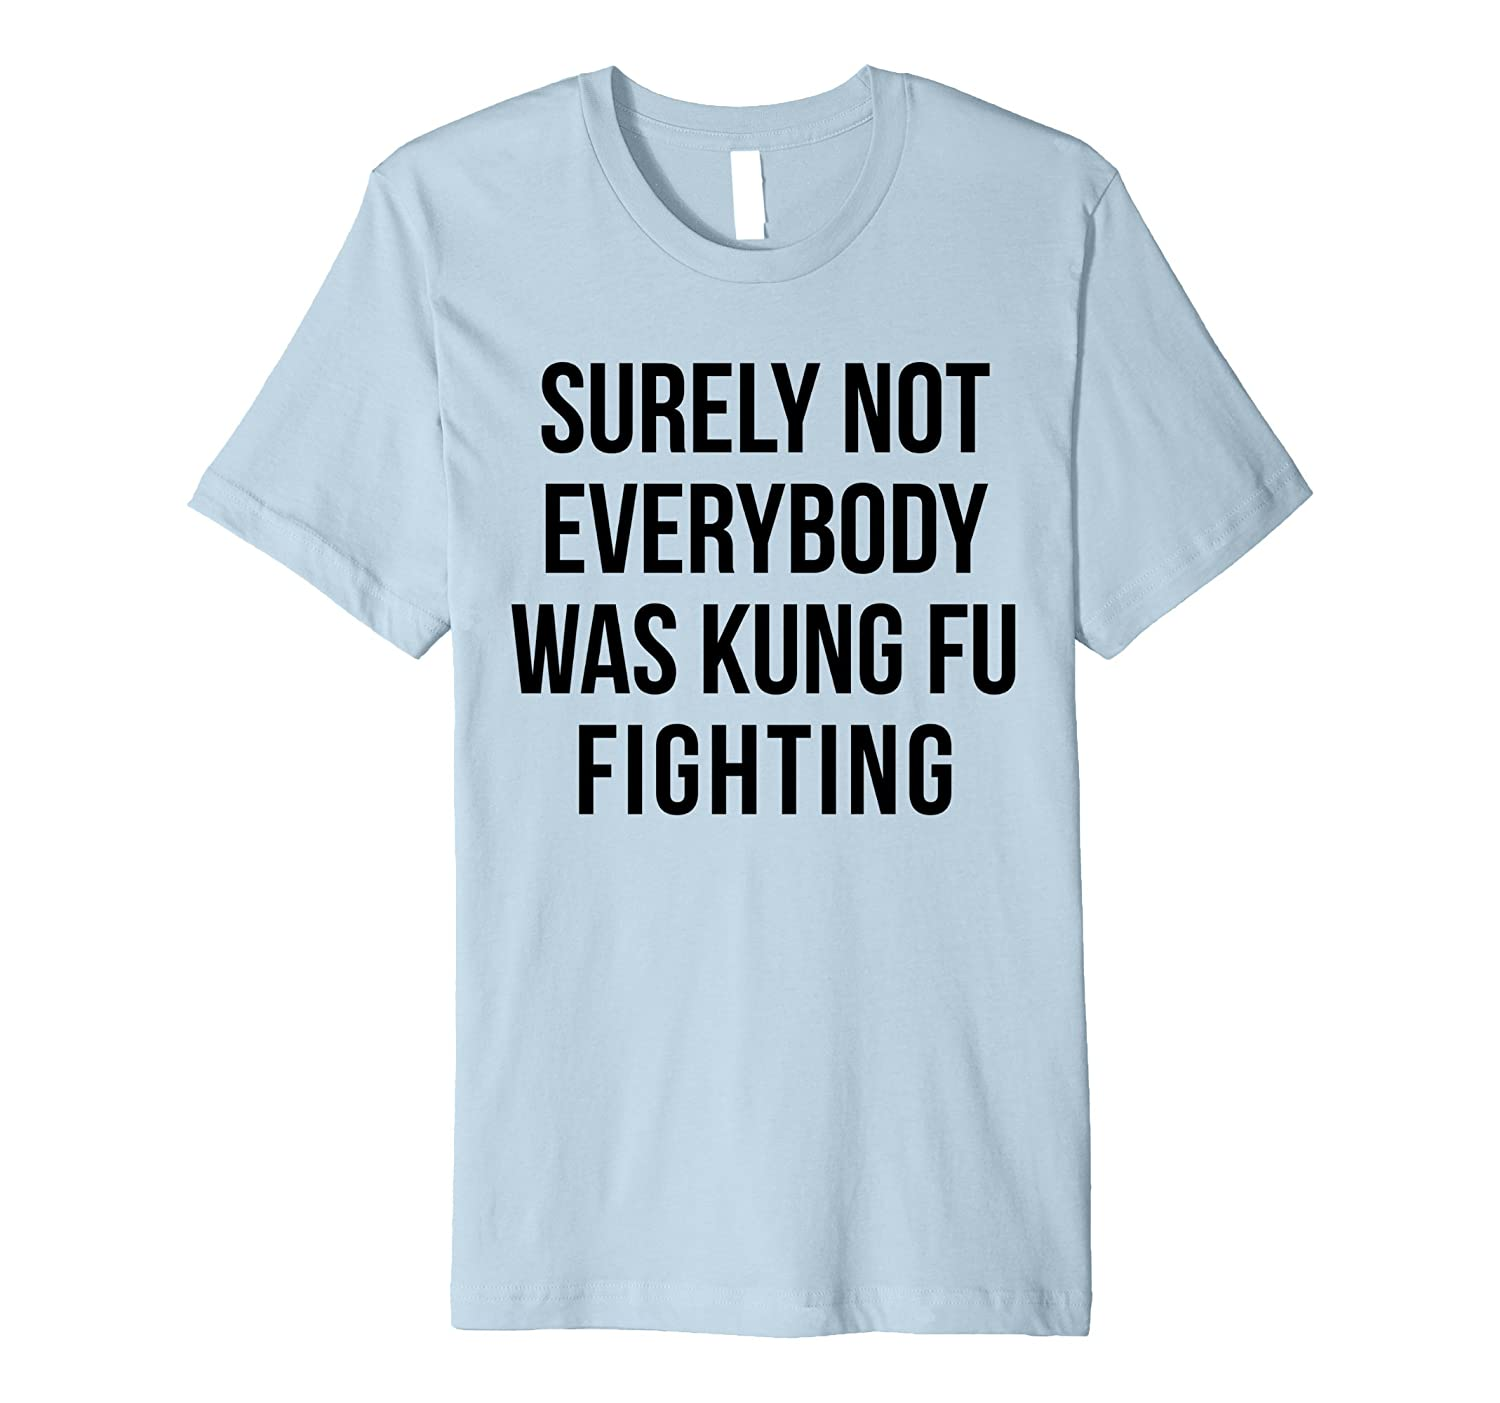 """Surely Not Everybody Was Kung Fu Fighting"" Funny T-Shirt"